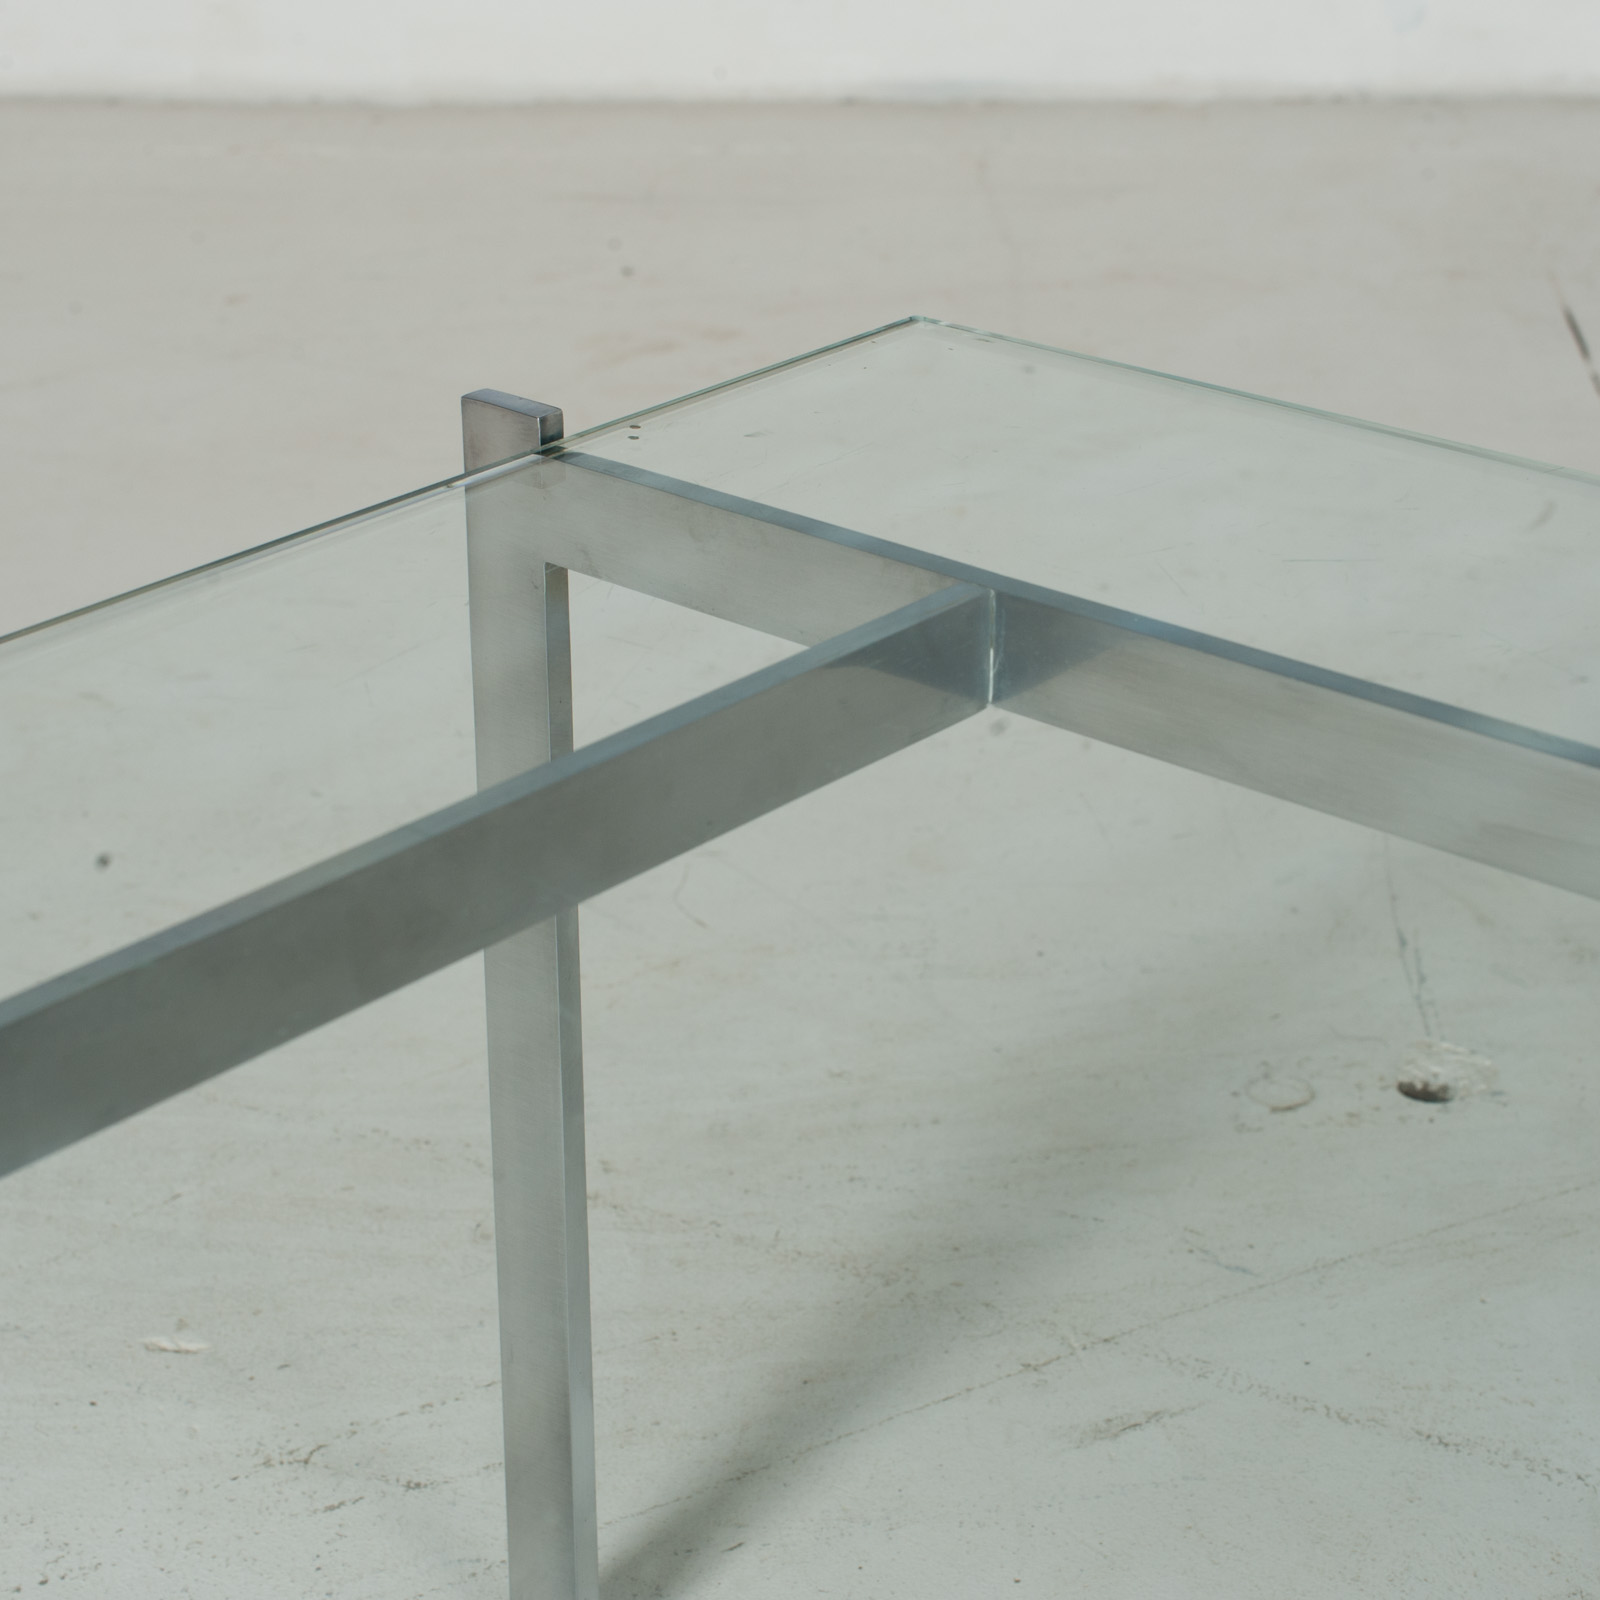 Coffee Table In The Style Of Poul Kjaerholm With Chrome And Glass, 1960s, Netherlands9